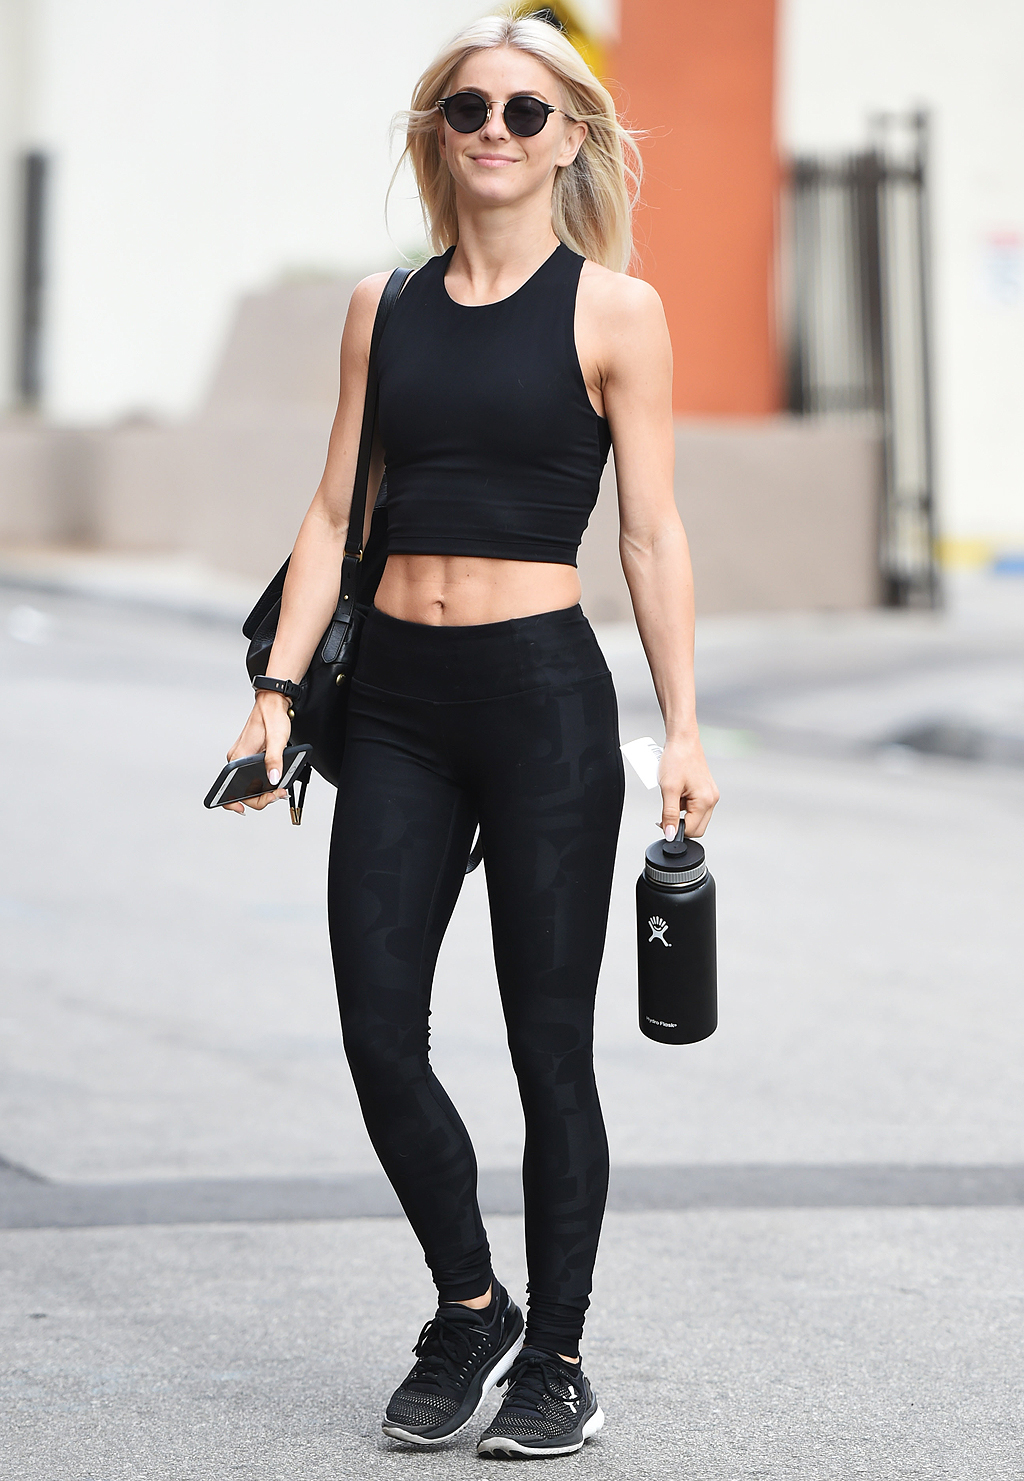 Julianne Hough's Food Diary: What I Eat in a Day